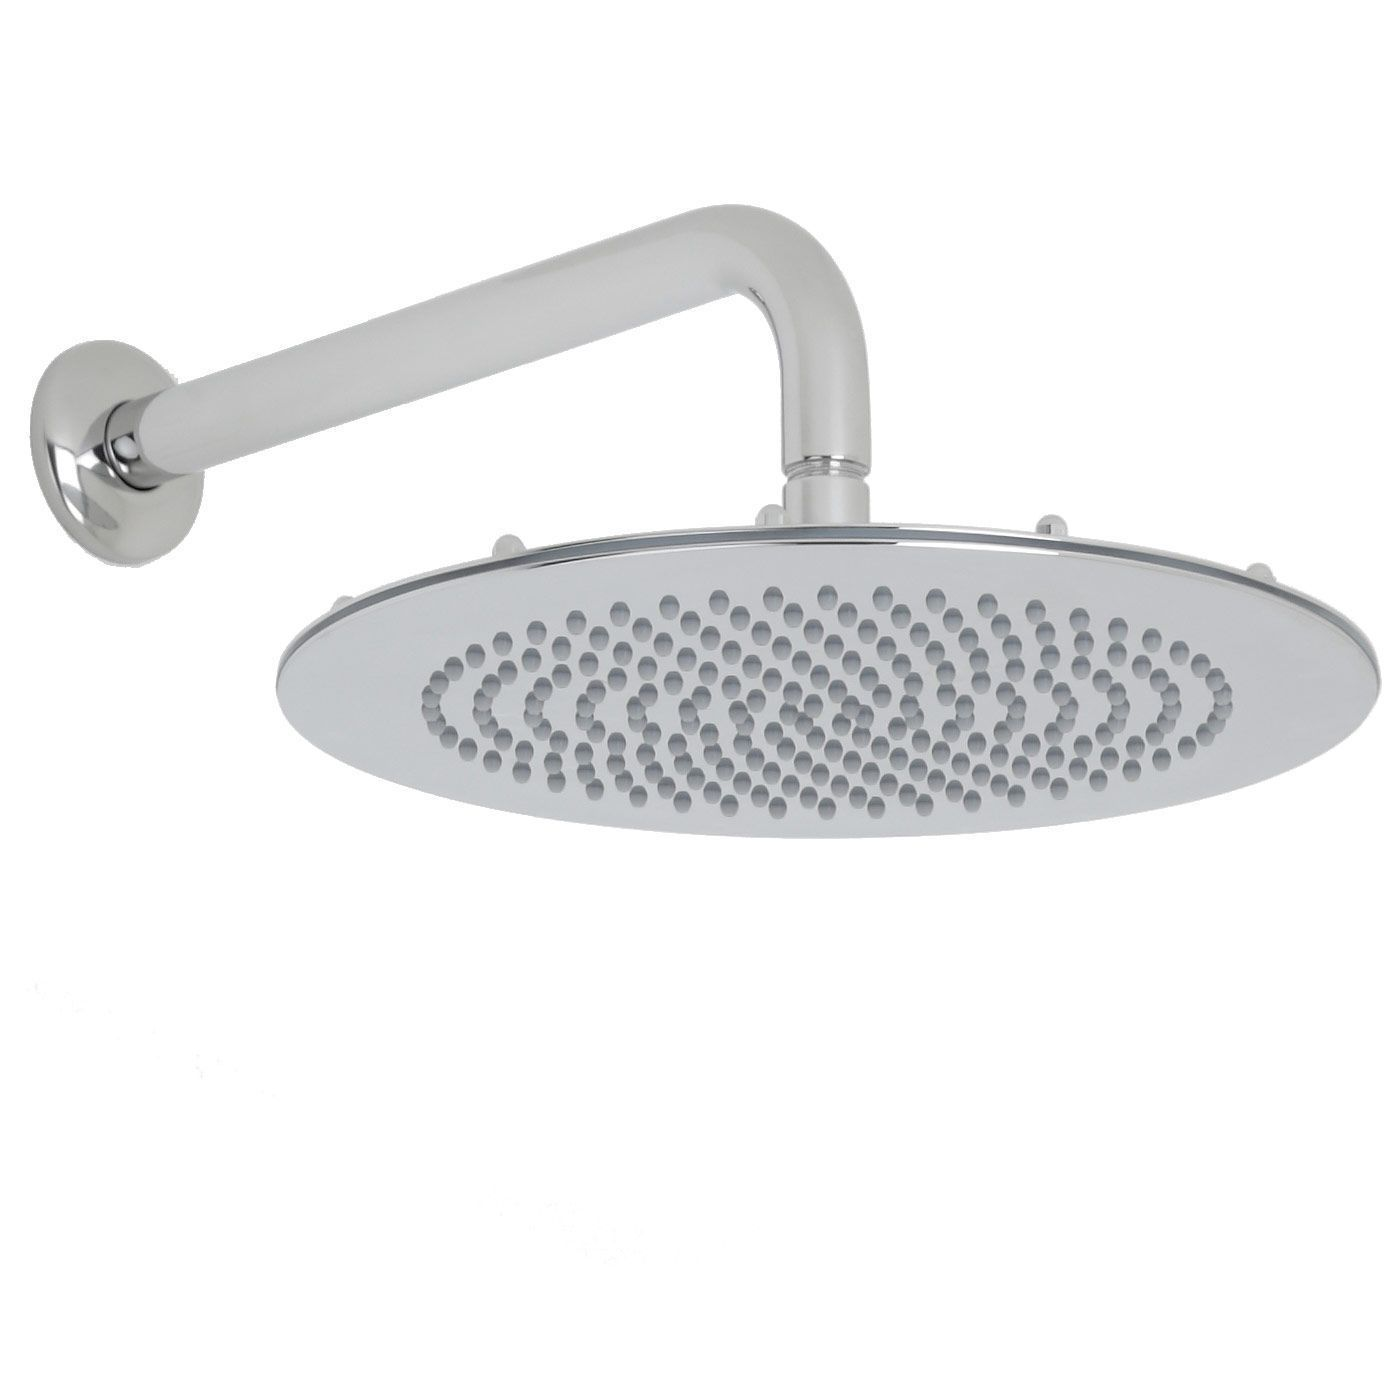 how to fix shower head arm